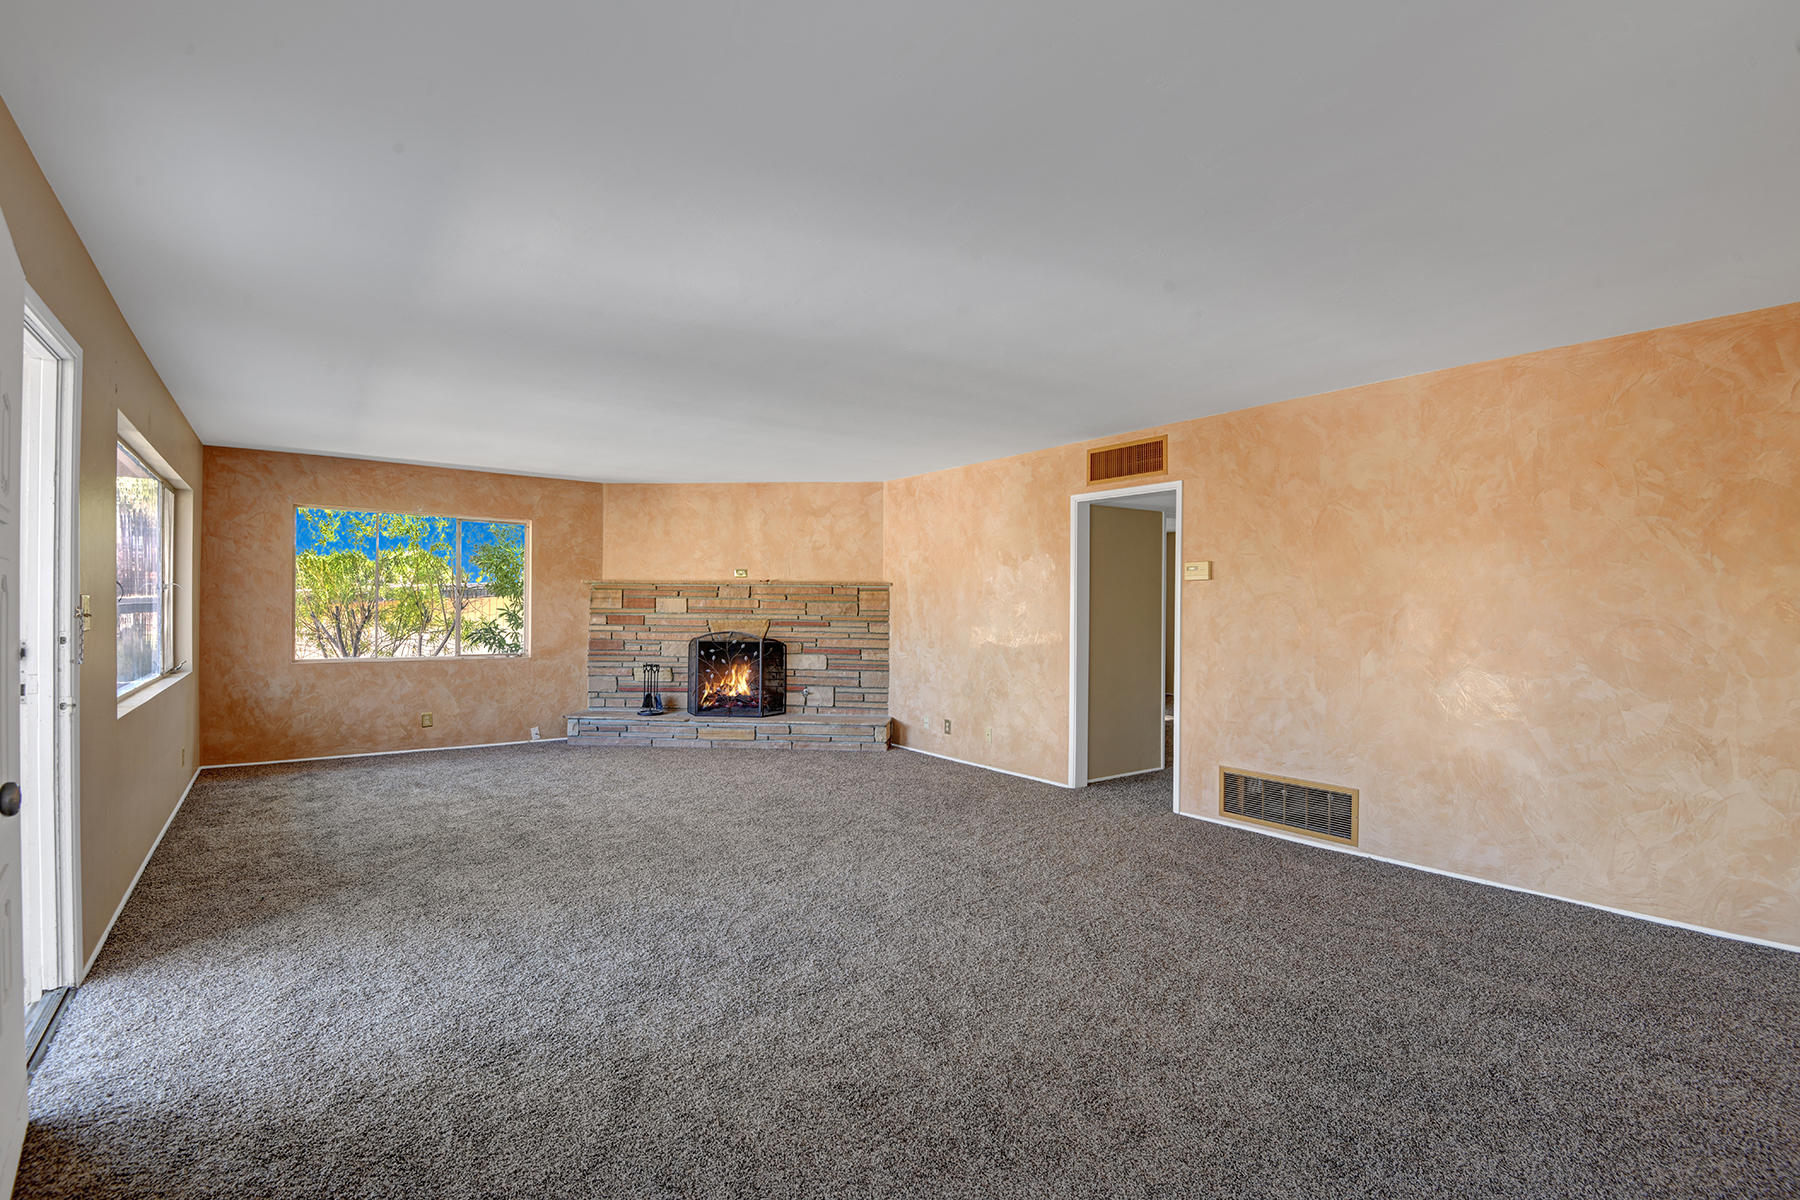 37732 Melrose Drive, Cathedral City, California 92234, 3 Bedrooms Bedrooms, ,2 BathroomsBathrooms,Residential,For Sale,37732 Melrose Drive,219033446